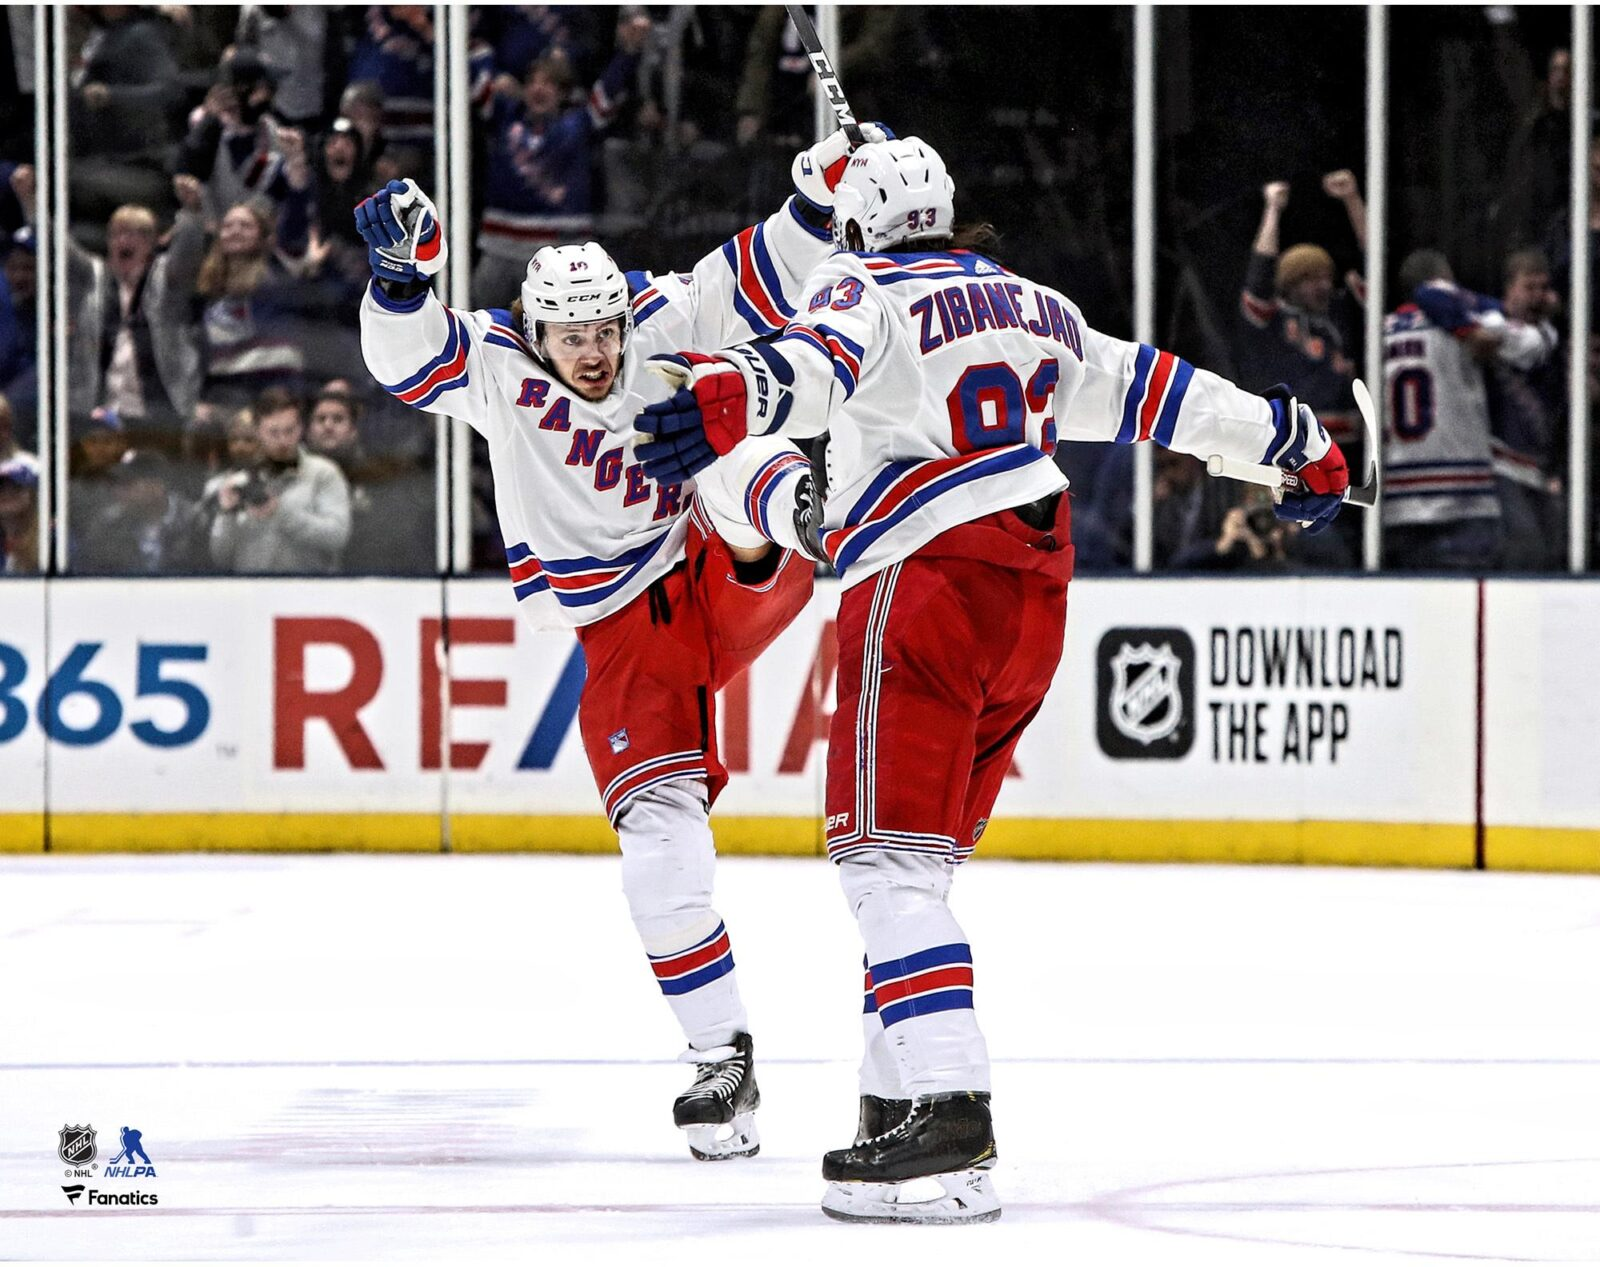 Recapping a wild first week of the 2021-22 Rangers season